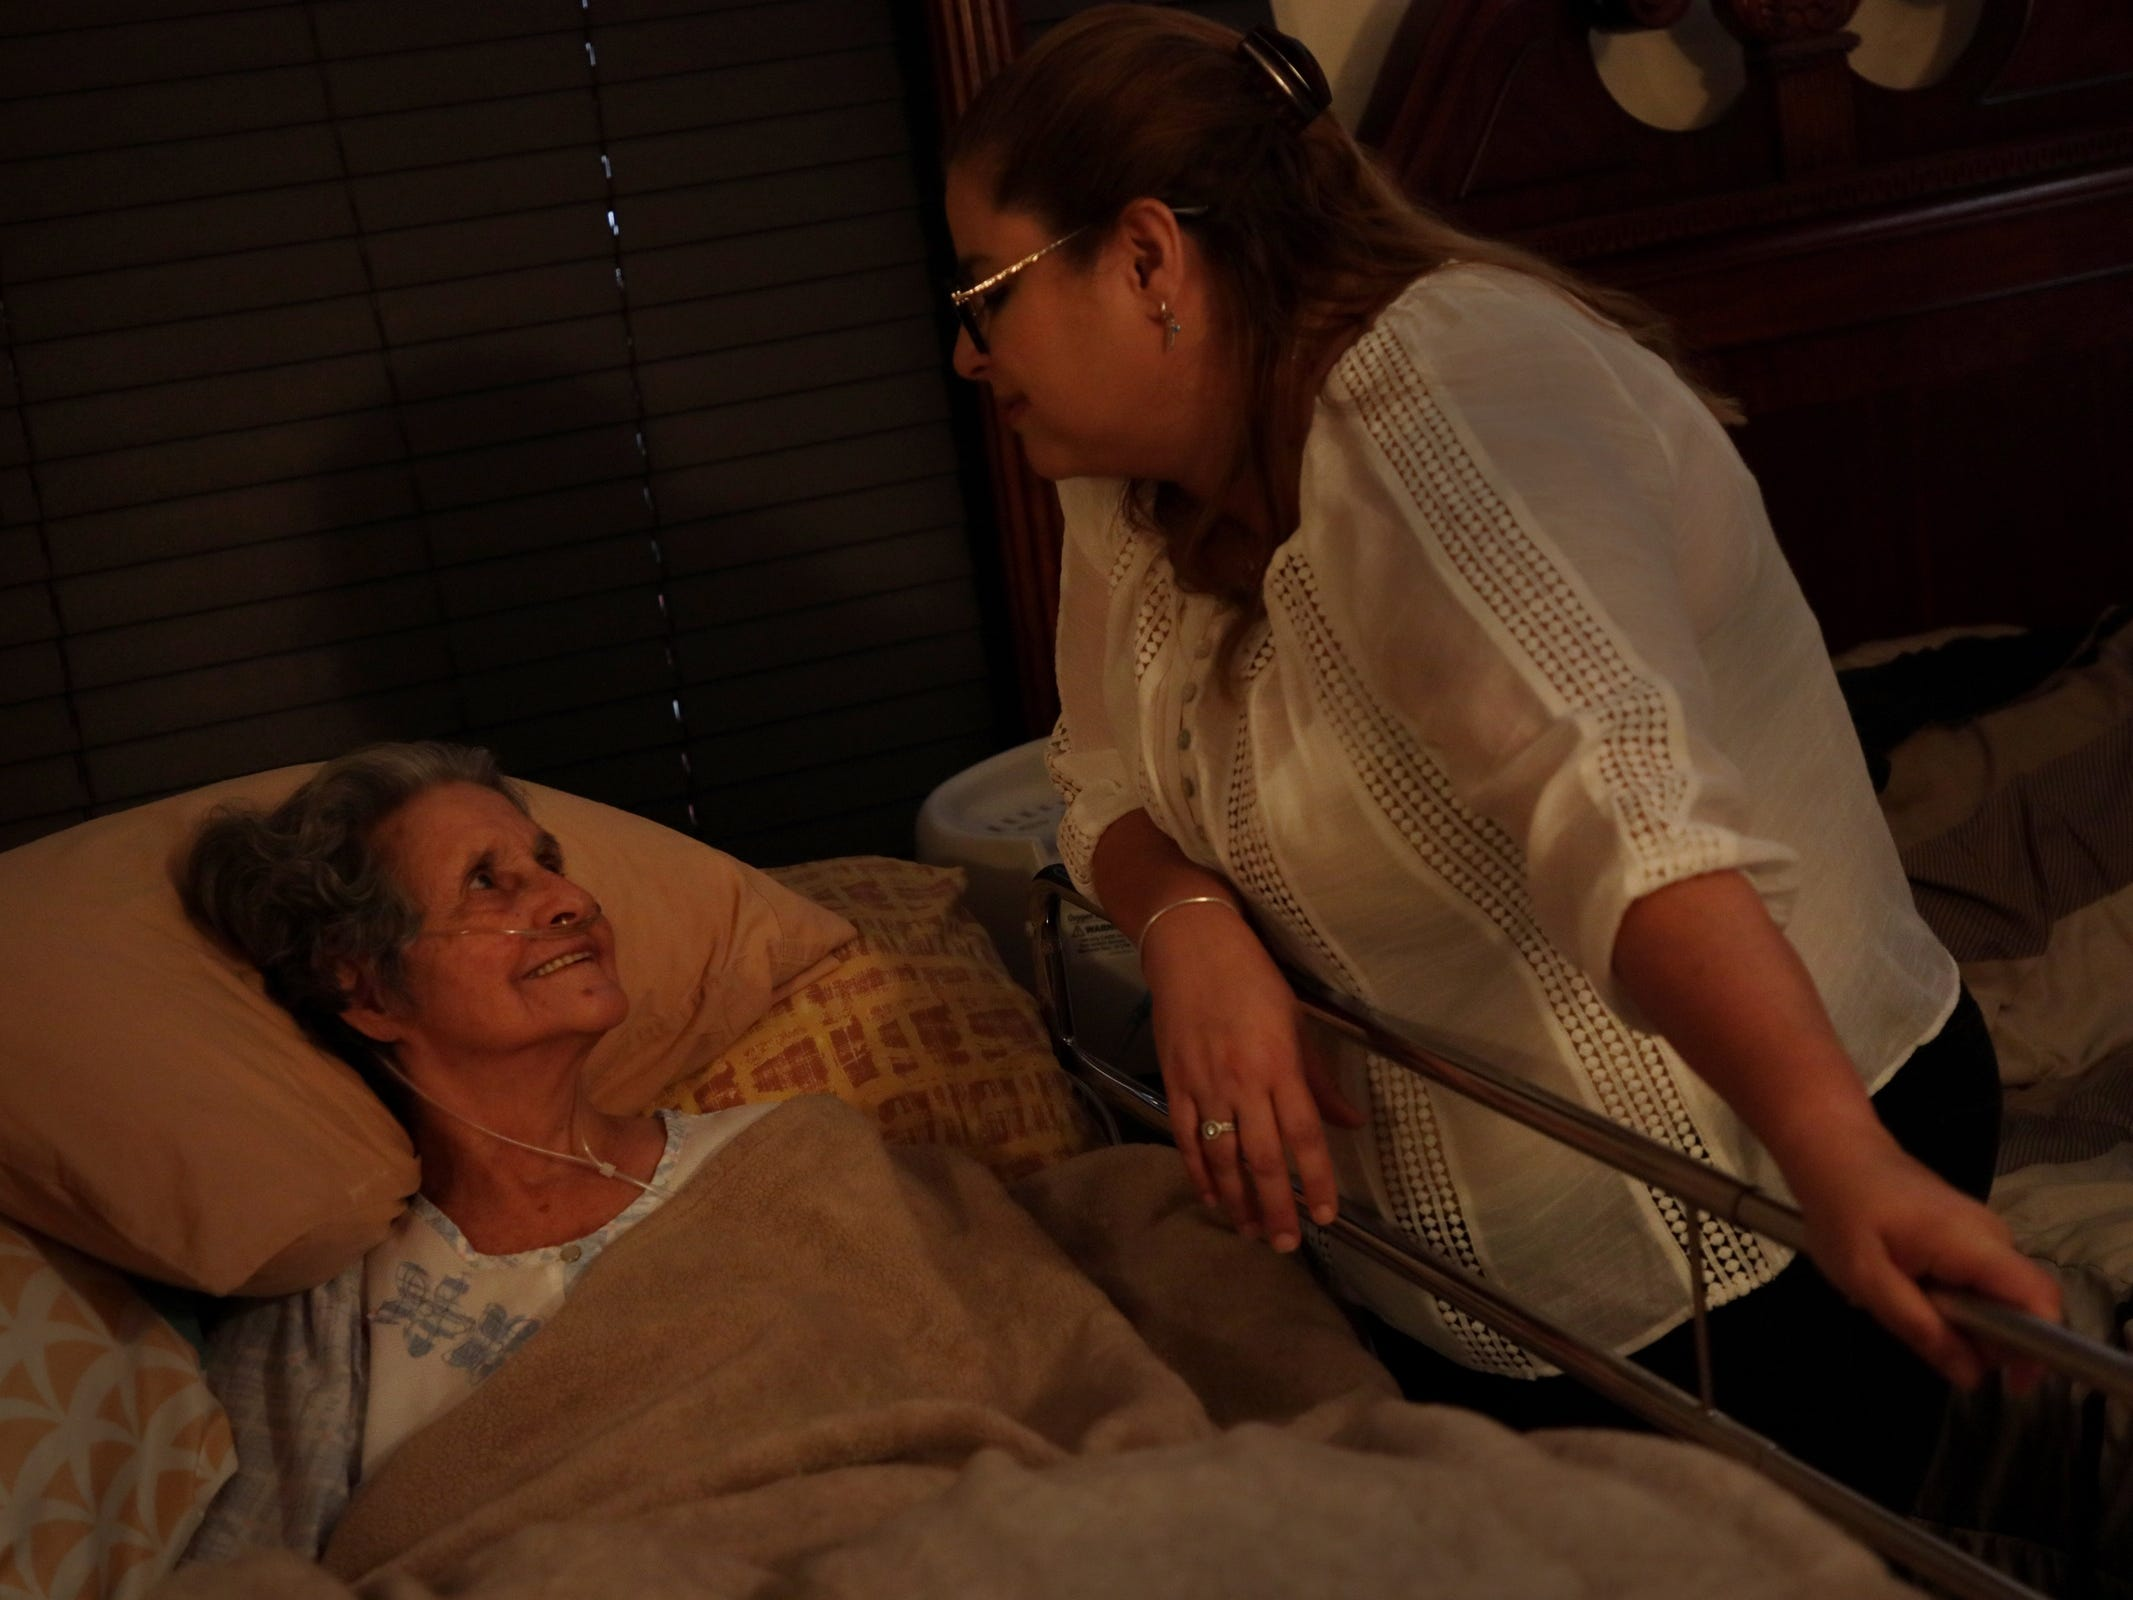 Luisa Carmona Collazo, right tends to her mother Rosario Collazo Mejias who suffers from Alzheimers disease at her home in Bayamon, Puerto Rico on Saturday, July 28, 2018.